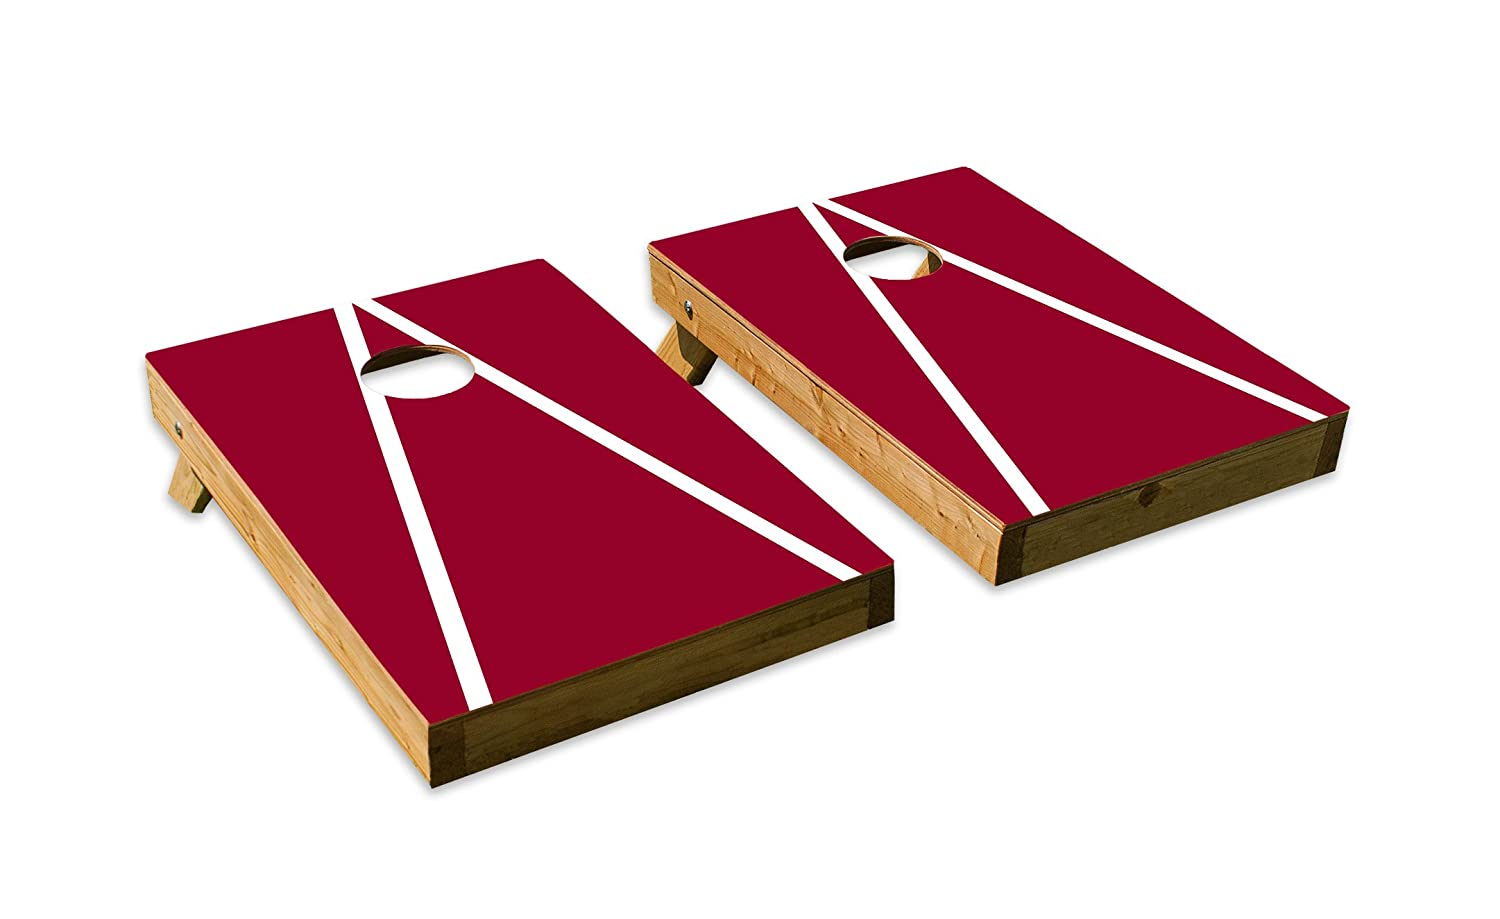 Washington State CougarsデザインCornhole/Bean Bag Tossボードセット – Made in USA木製 – 2 ' x3 'テールゲートサイズ – Includes 8 corn-filled Beanバッグ B07DZY56B6  Tailgate